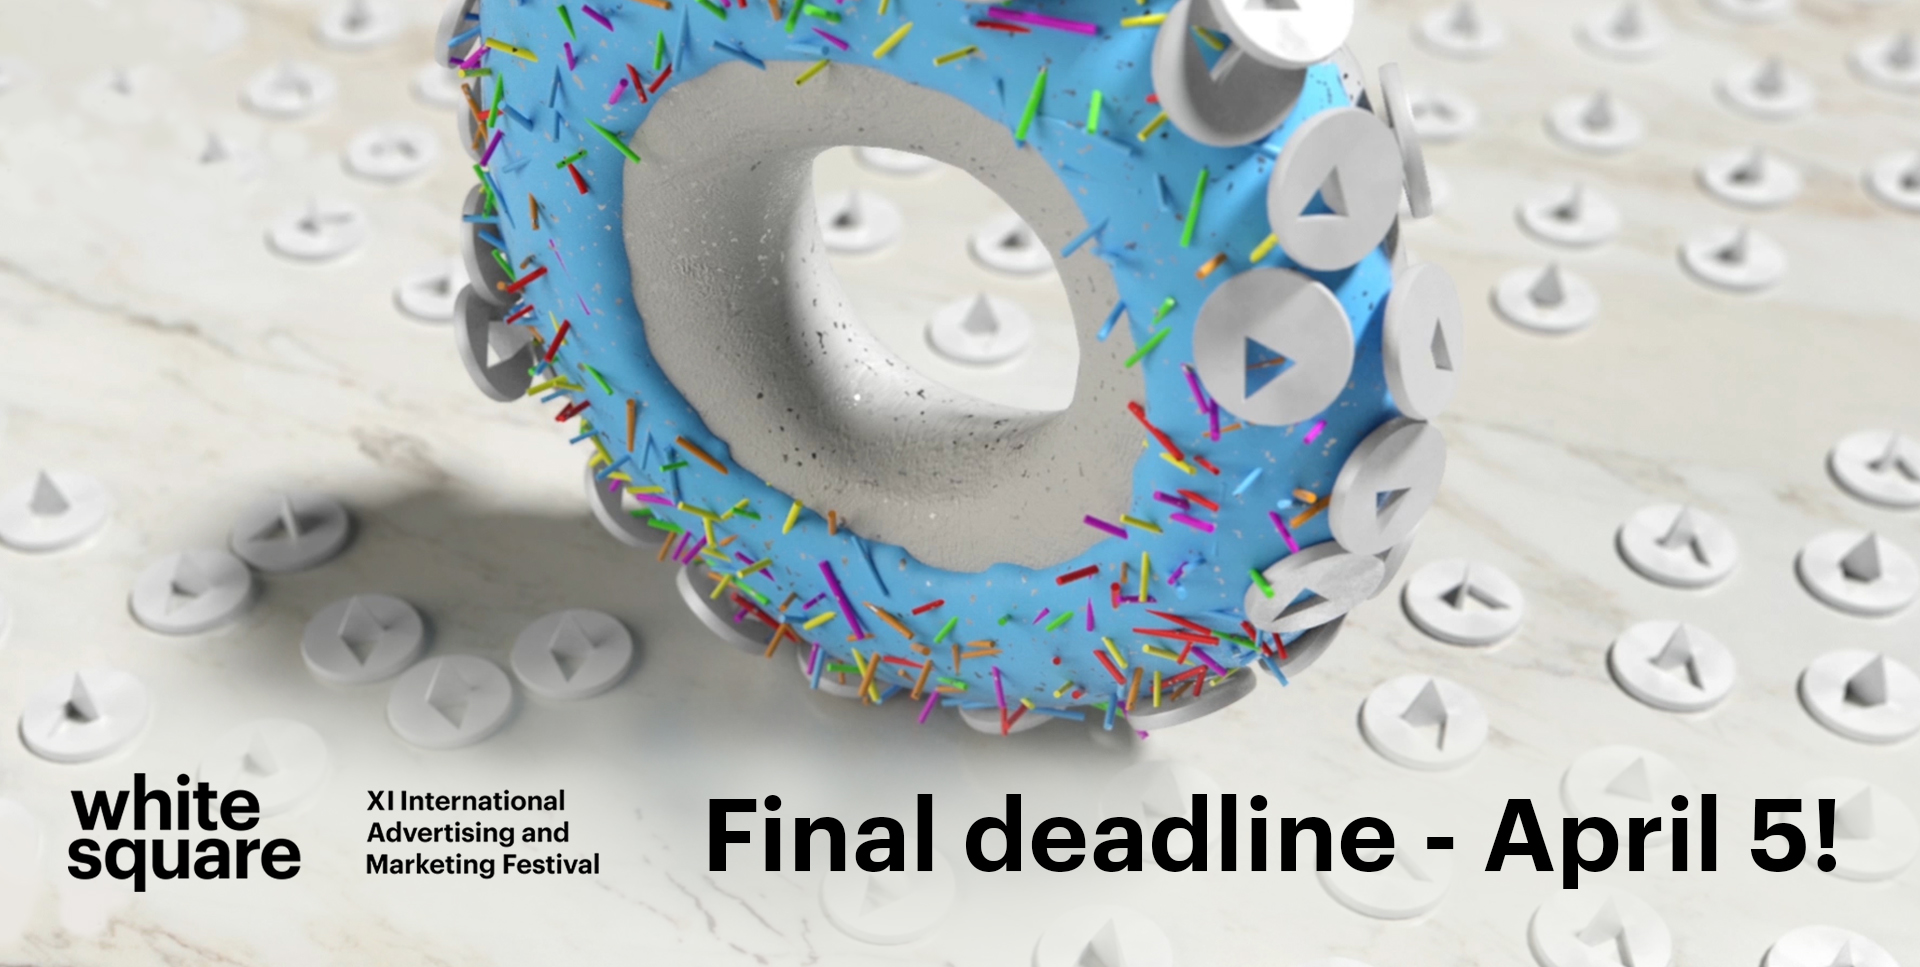 БЕЛЫЙ КВАДРАТ: FINAL DEADLINE – APRIL 5! YOUR MOMENT IS NOW!